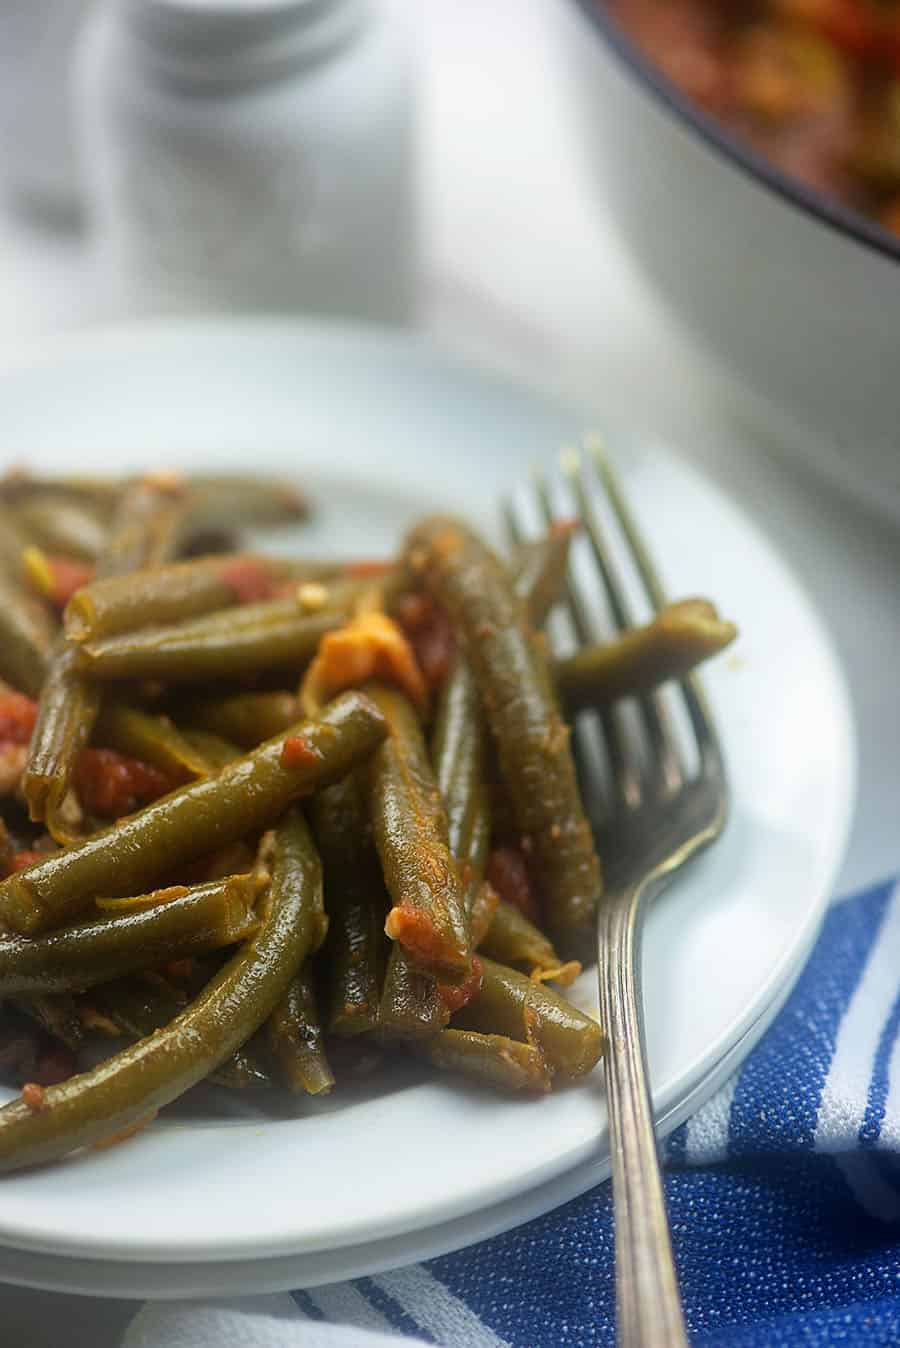 A close up of green beans and a fork on a white plate.